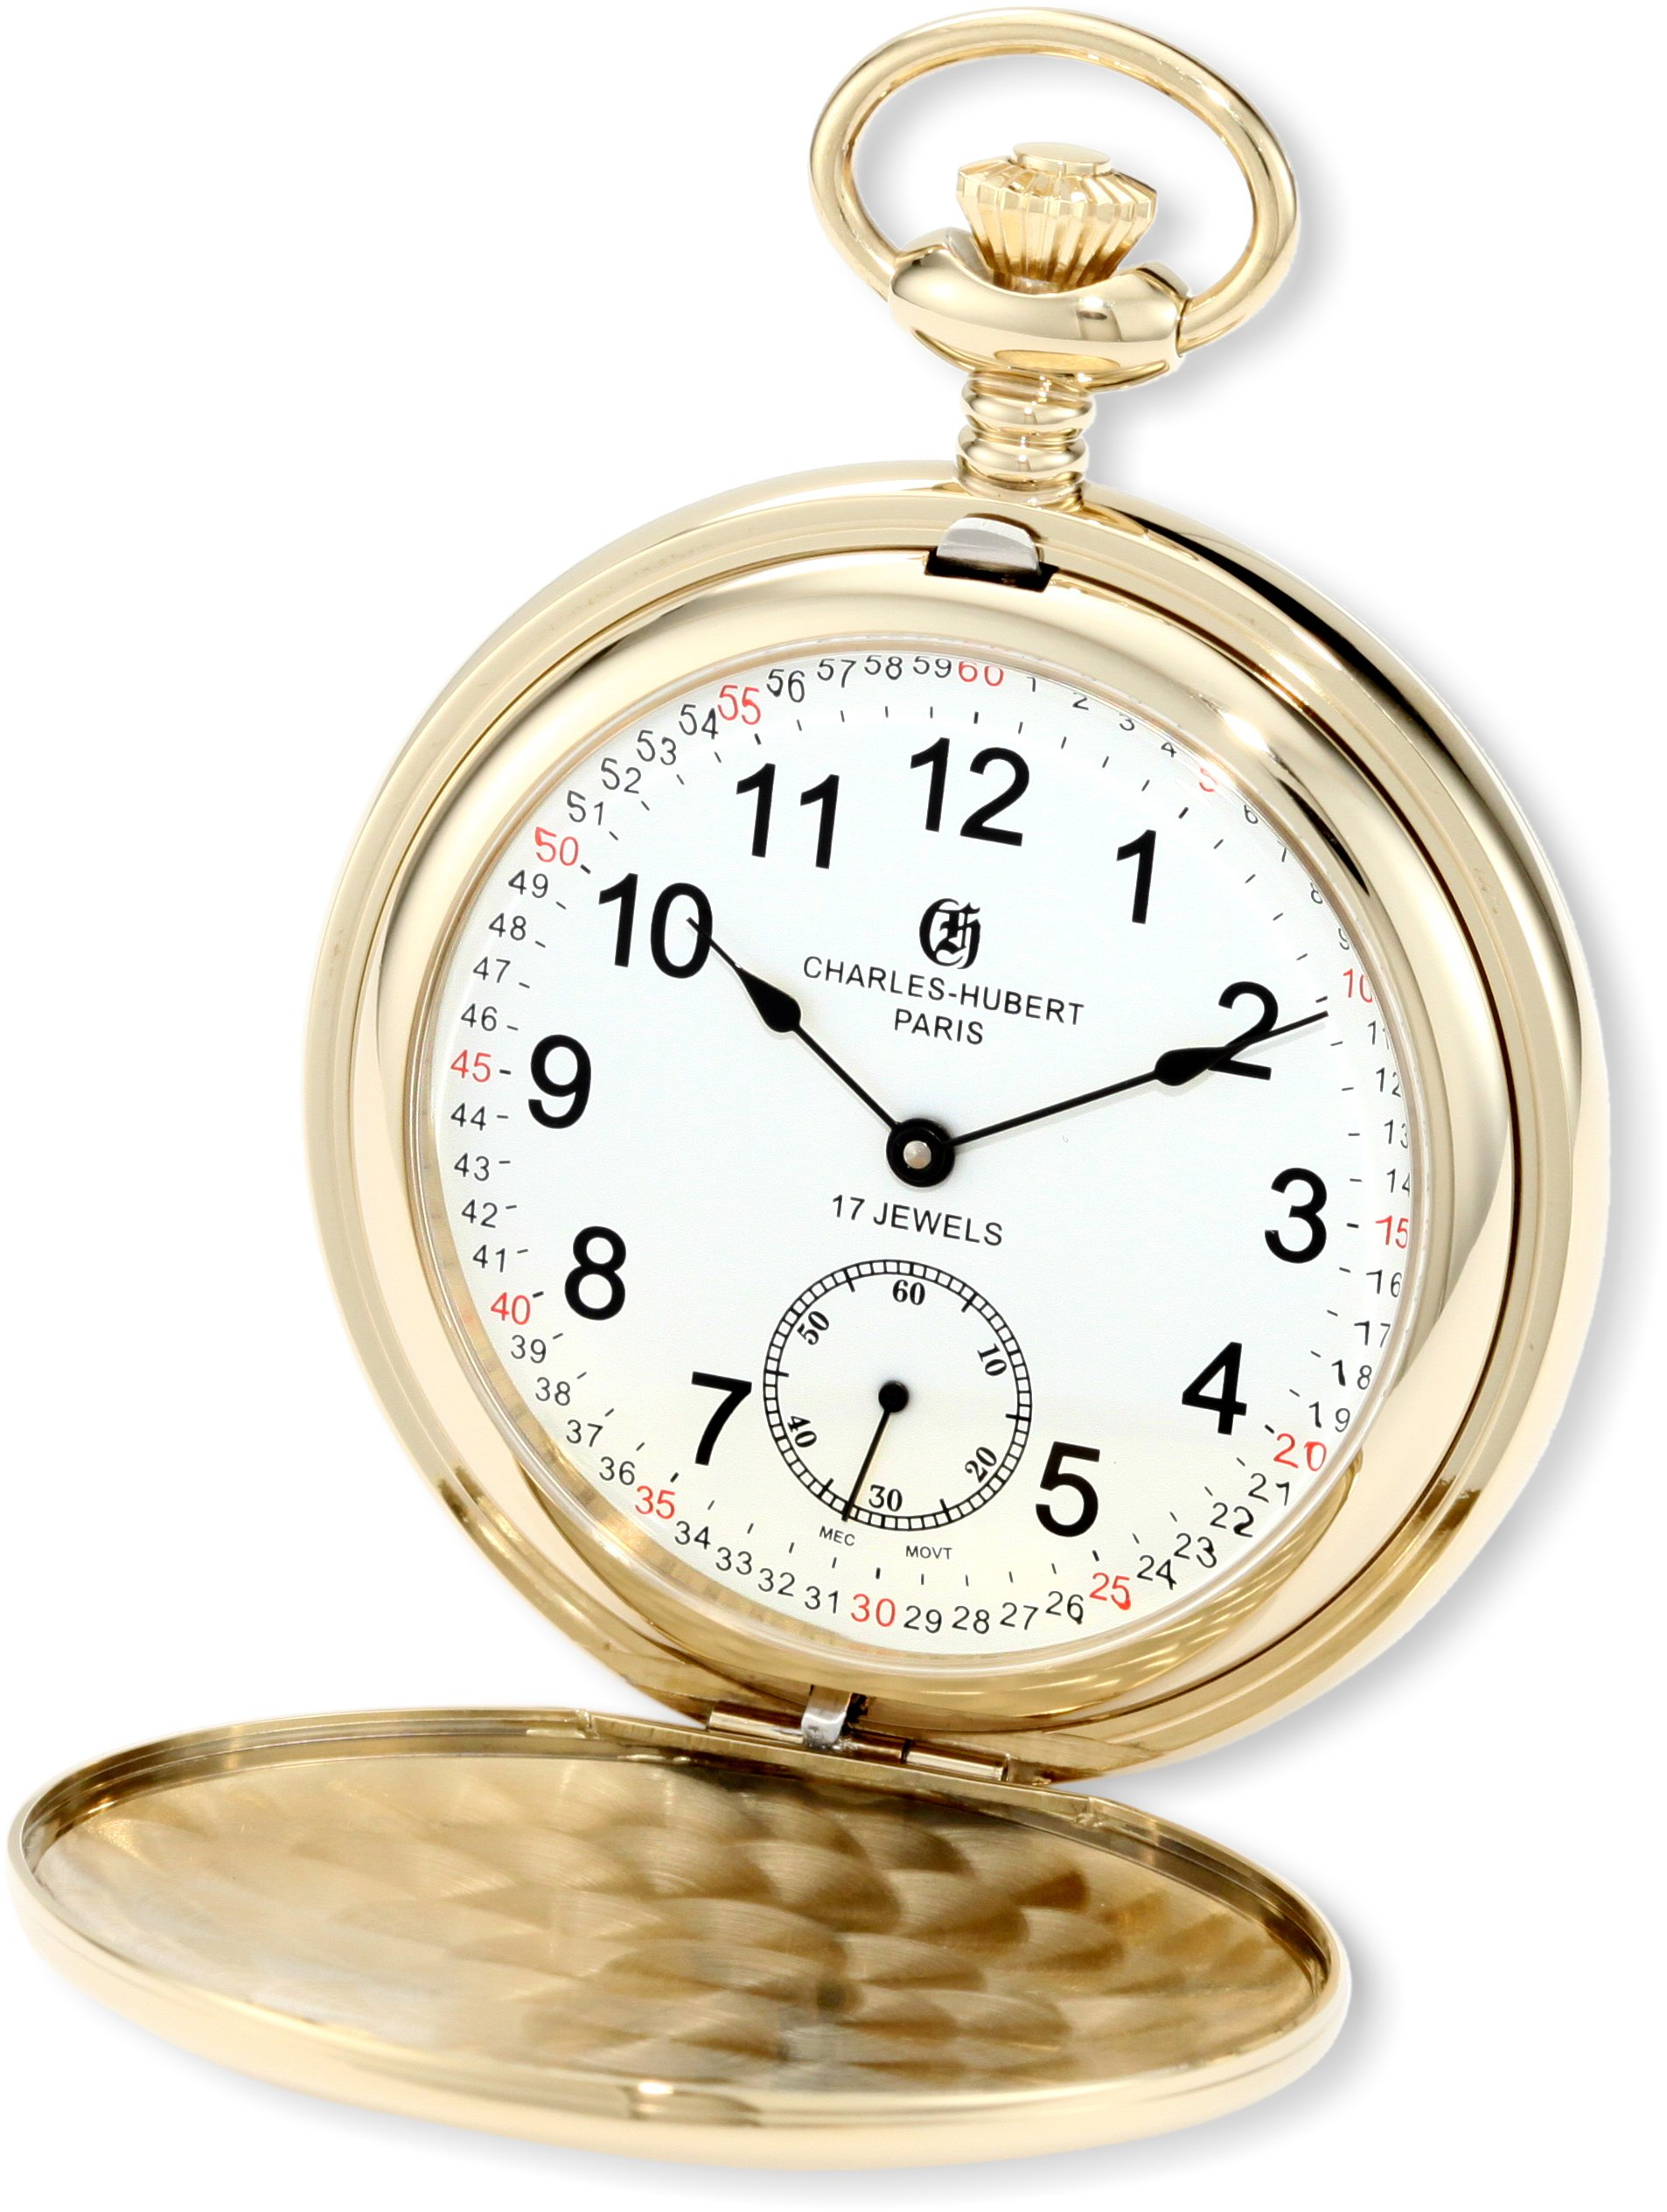 Charles-Hubert, Paris 3907-GRR Premium Collection Gold-Plated Stainless Steel Polished Finish Double Hunter Case Mechanical Pocket Watch